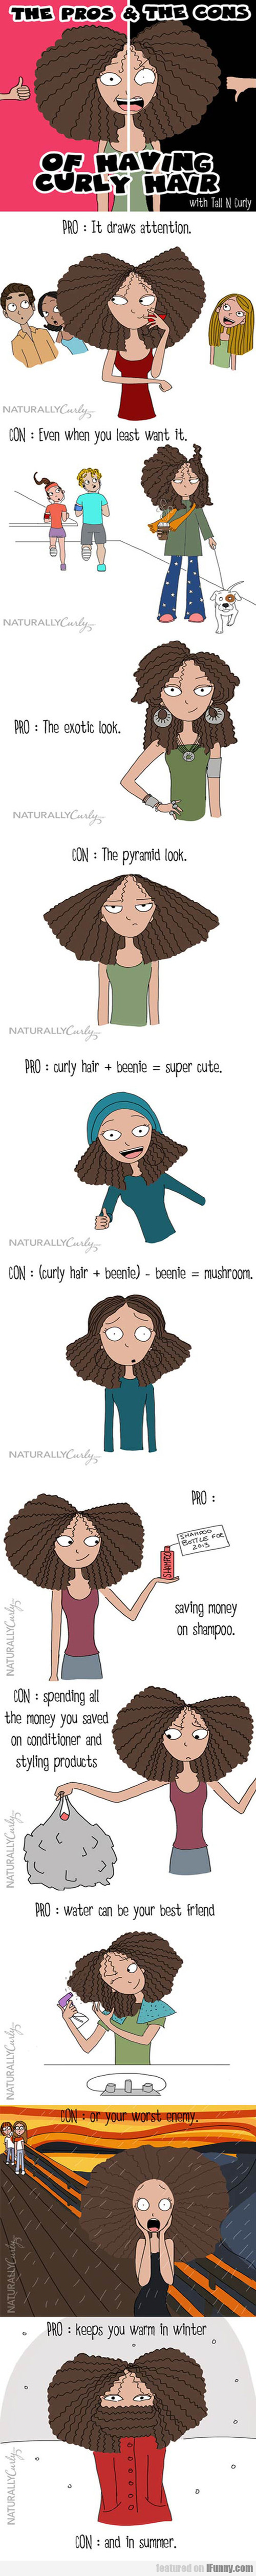 Pros And Cons Of Having Curly Hair